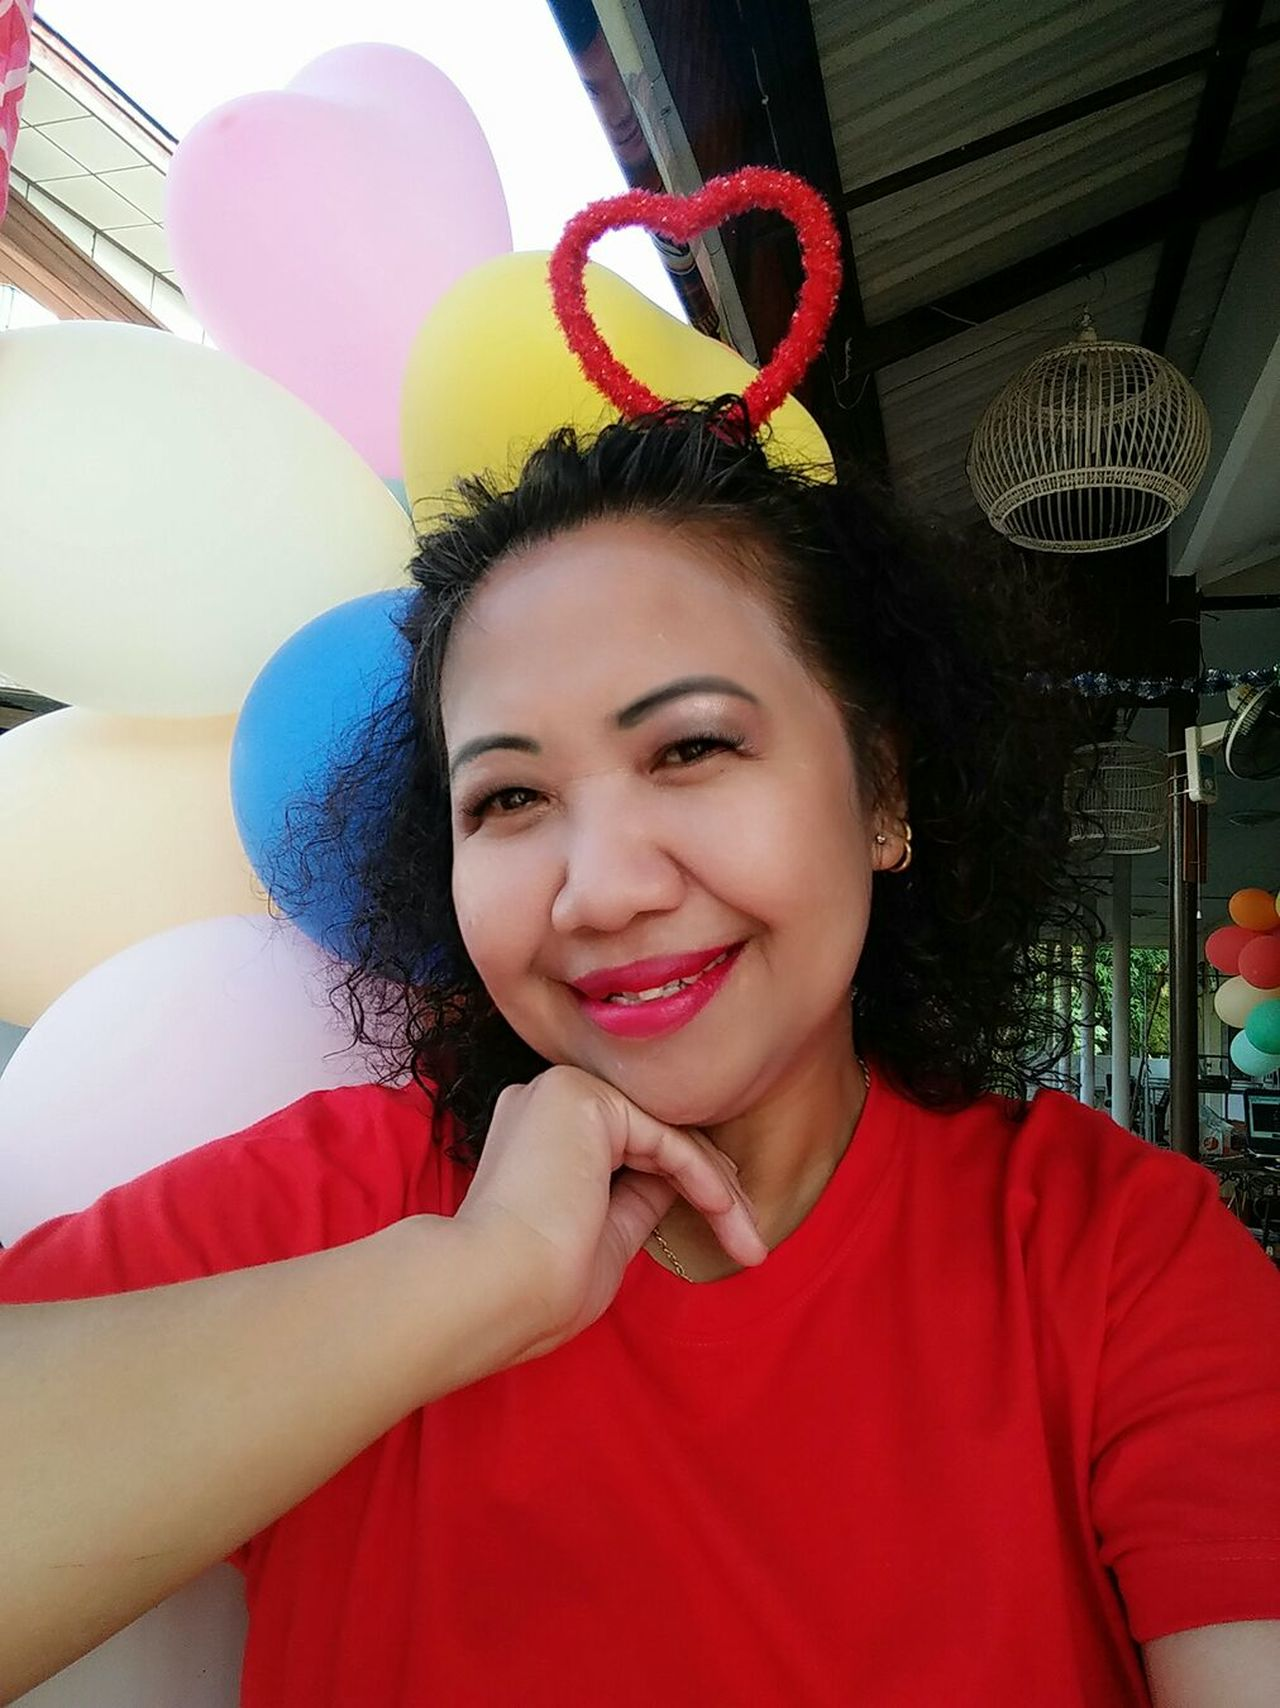 Smile Enjoying Life My Smile :)  That's Me My Feelings Pink Dress❤ Color Color Ballon T-shirt Red Red Lips Smile❤ At ร้านท้ายทุ่ง 85/2 หมู่ที่ 2 มะเกลือเก่า สูงเนิน นครราชสีมา ไthailand